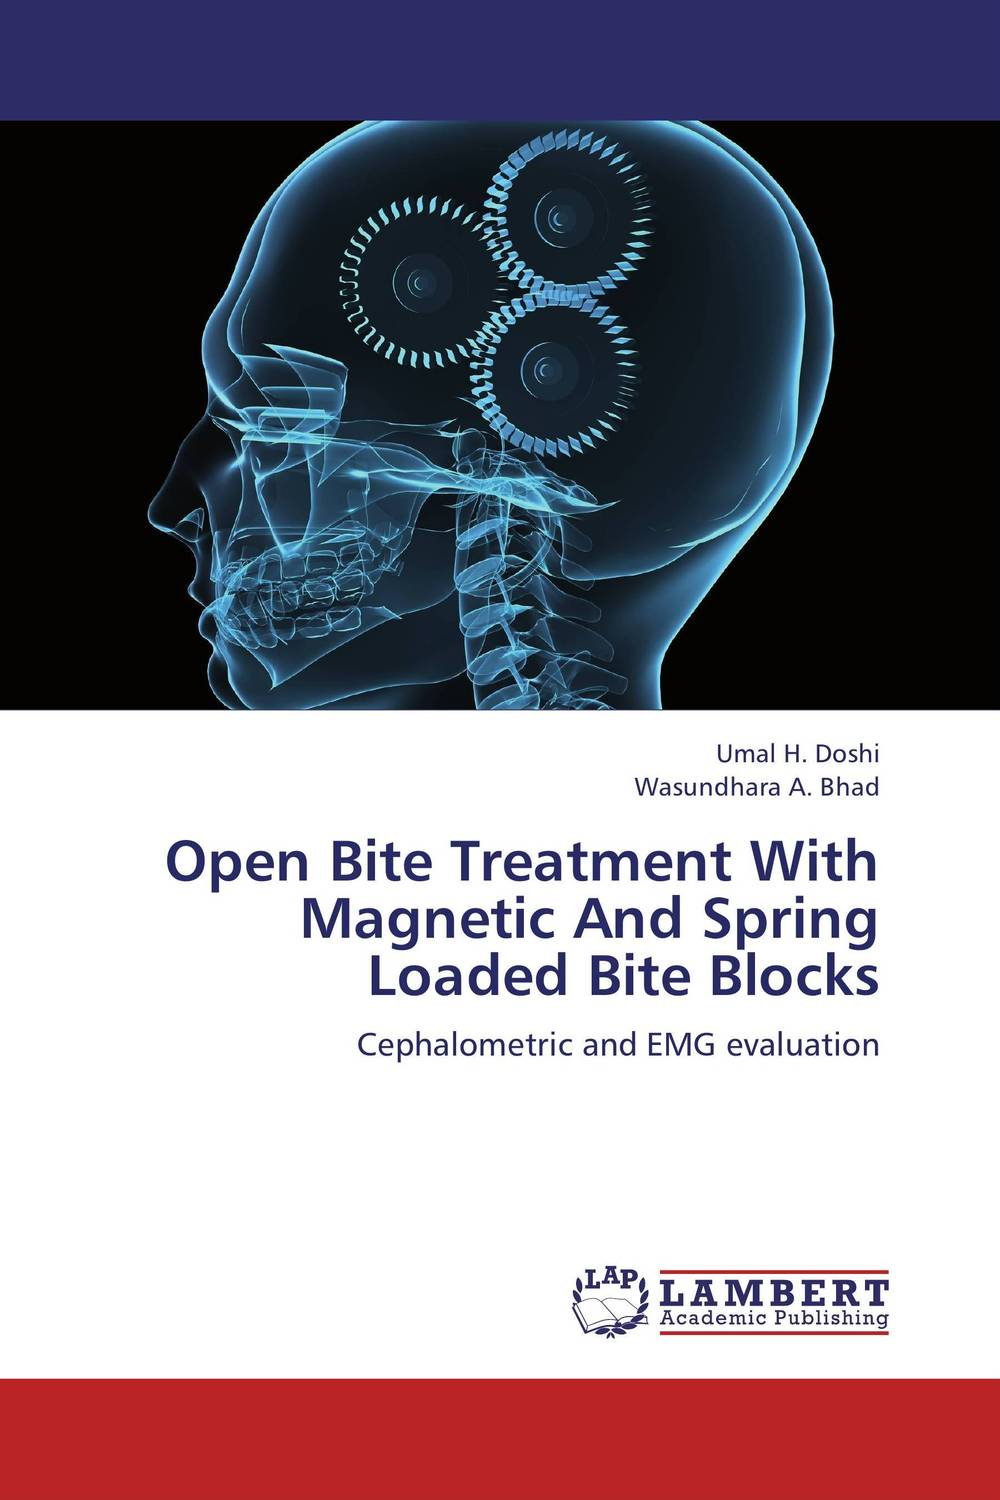 Open Bite Treatment With Magnetic And Spring Loaded Bite Blocks stefan hofmann g psychobiological approaches for anxiety disorders treatment combination strategies